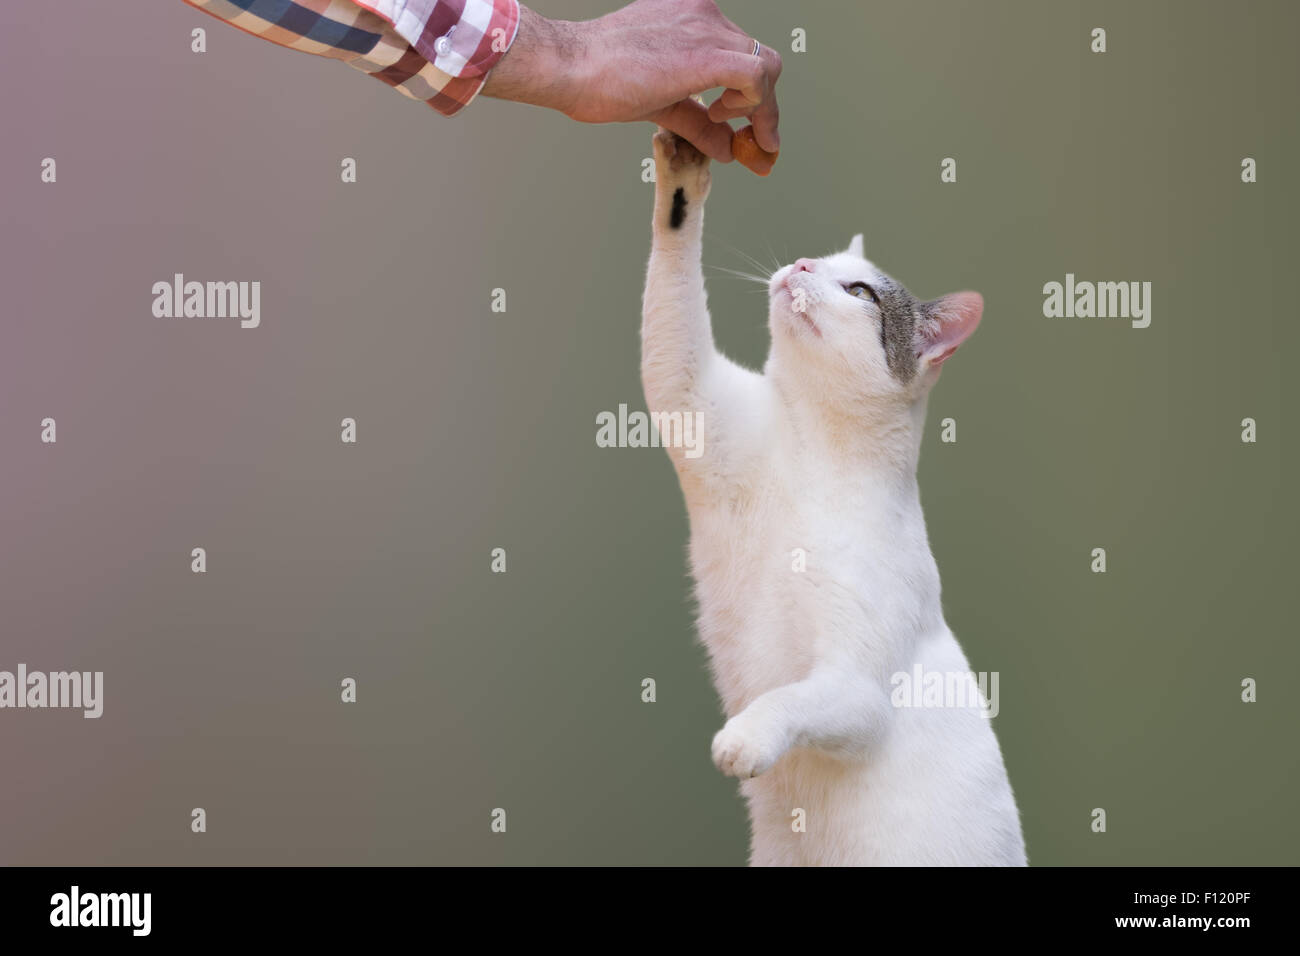 Cute cat grabbing sausage from a man's hand. - Stock Image